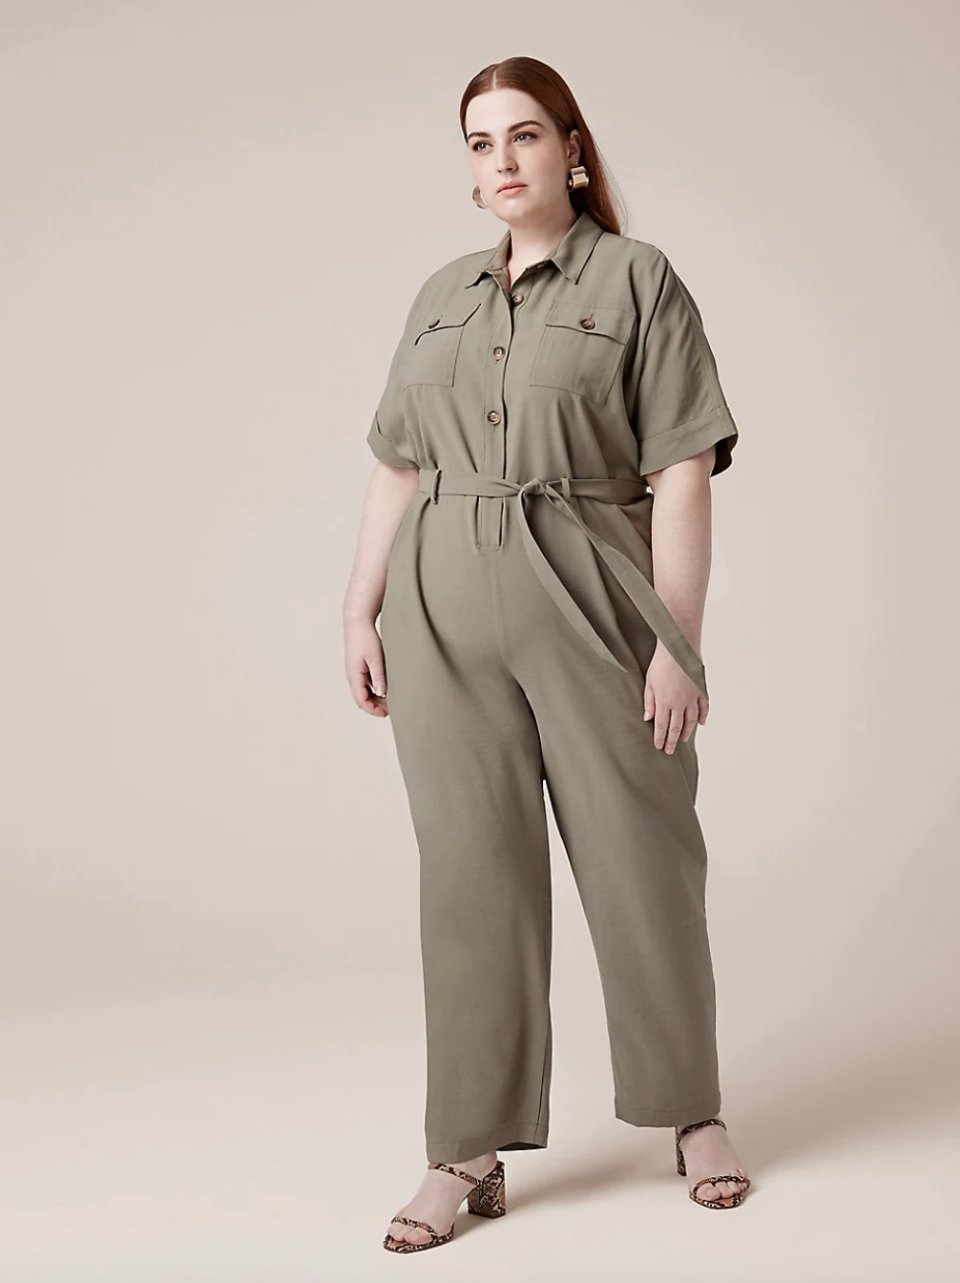 red head plus size model in tan belted jumpsuit and sandals